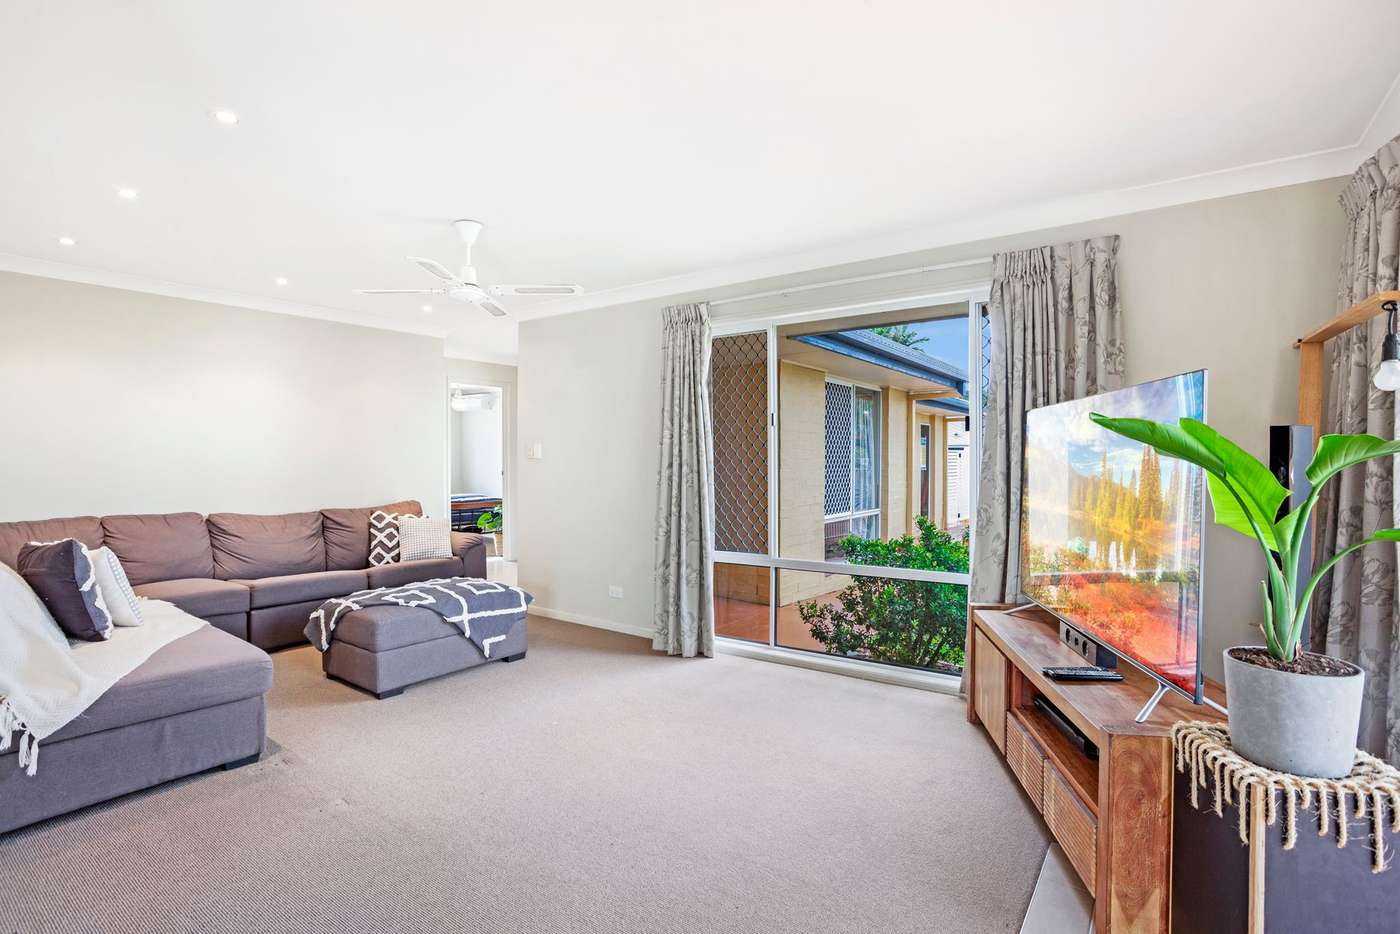 Sixth view of Homely house listing, 30 Coronet Crescent, Burleigh Waters QLD 4220